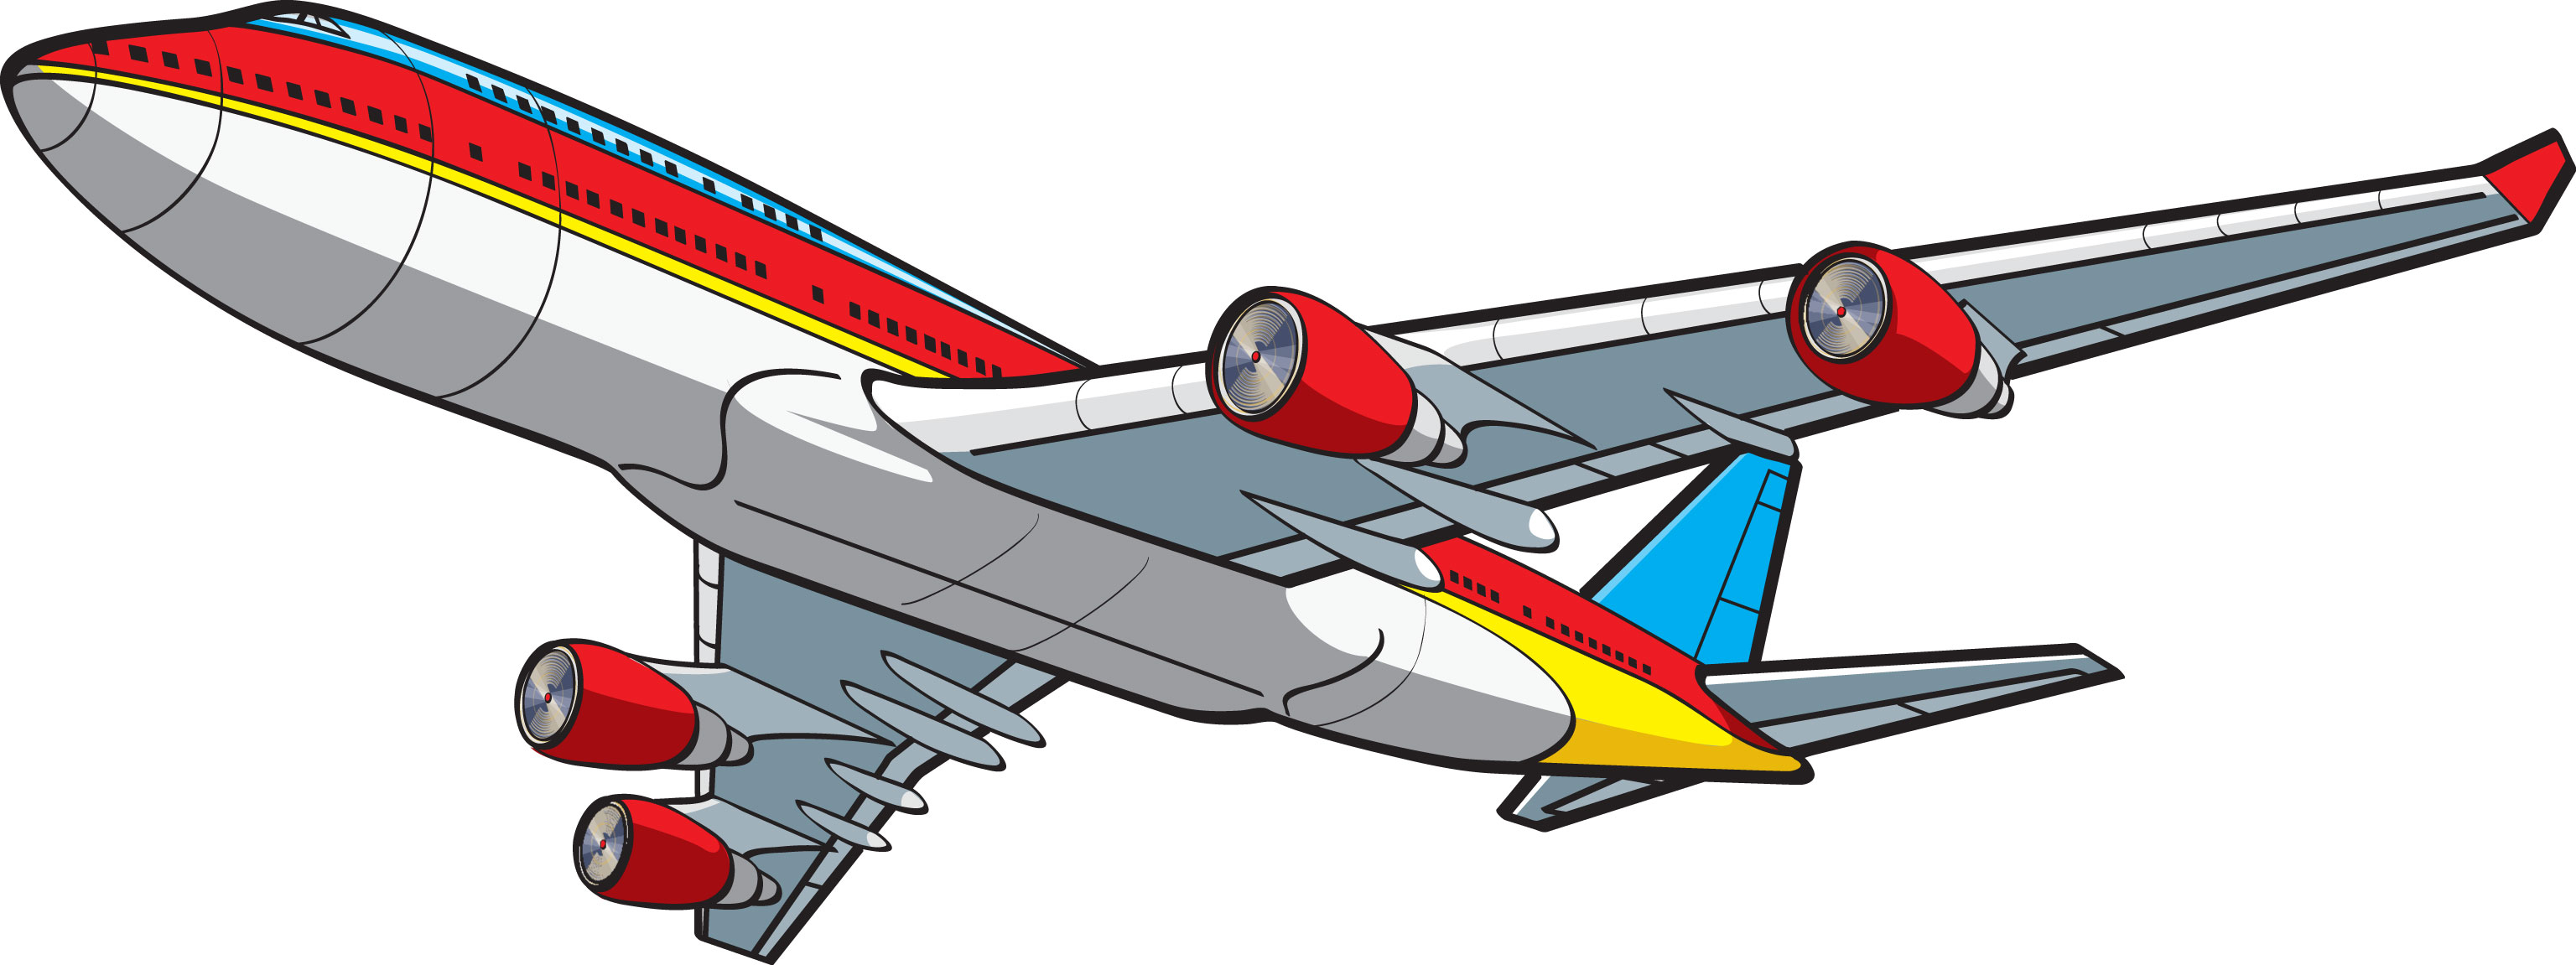 Plane clipart clip. Free airplane cliparts download